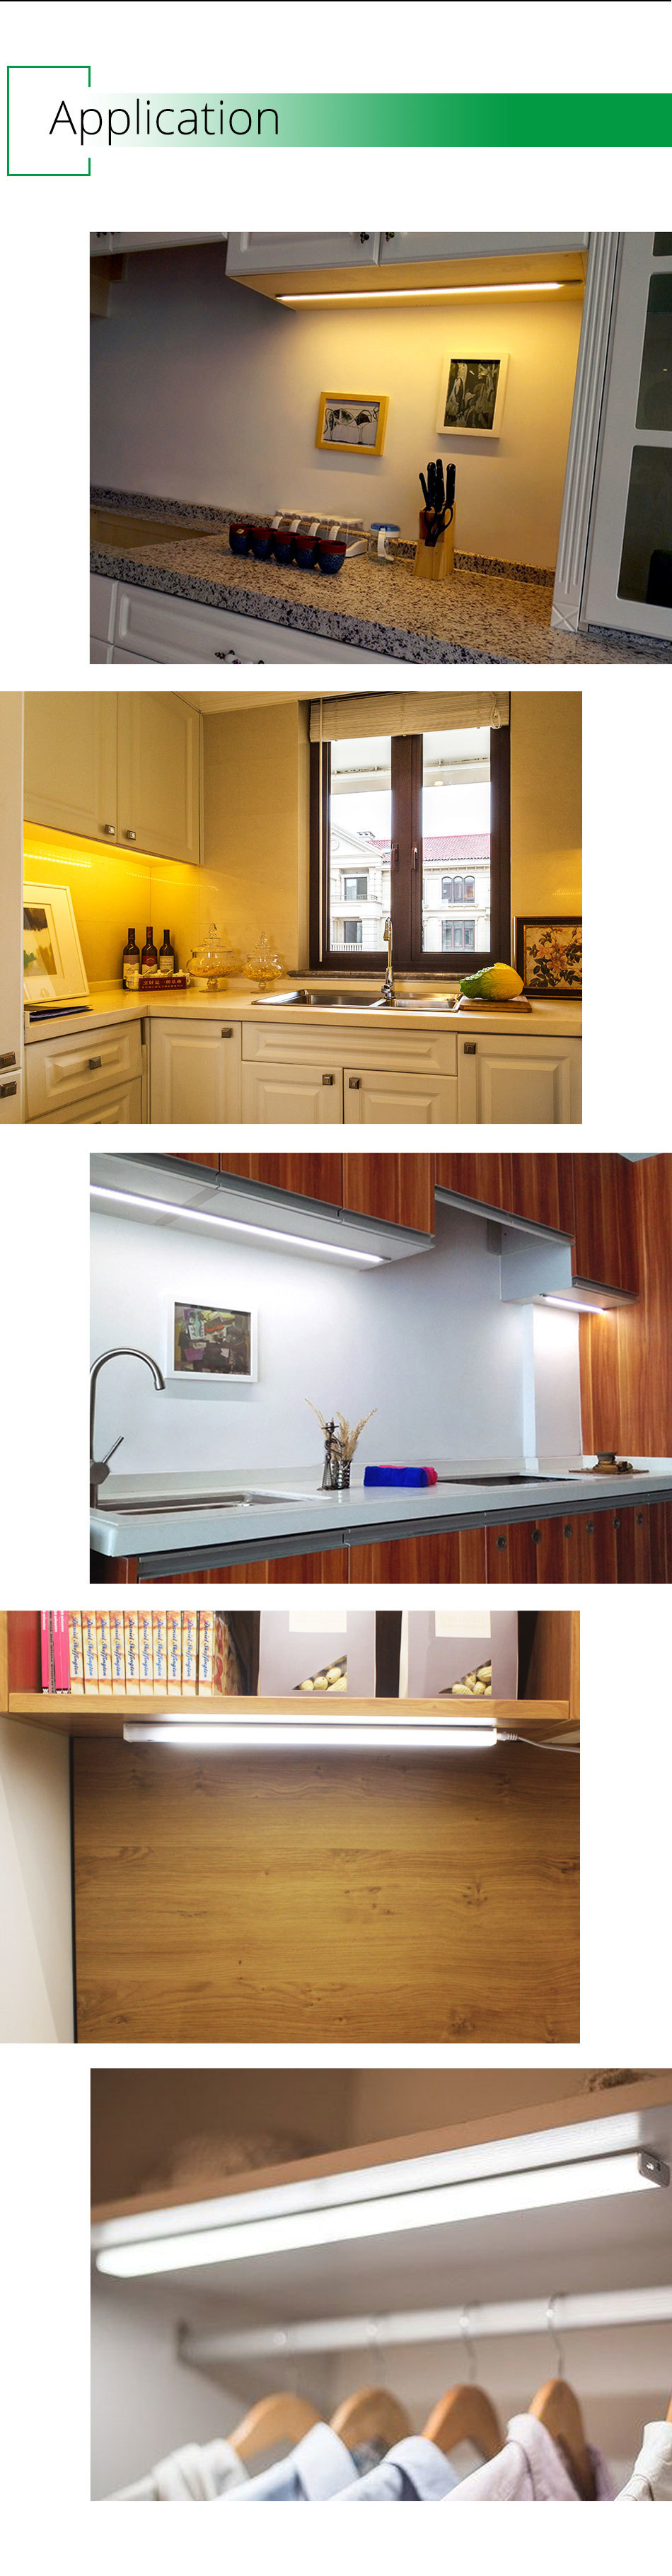 30CM 50CM 80CM 100CM Under Cabinet Led Light Kitchen Cabinet Closet Lamps home Decoration Bookcase Strip Wardrobe Dimmable Wardrobe (4)